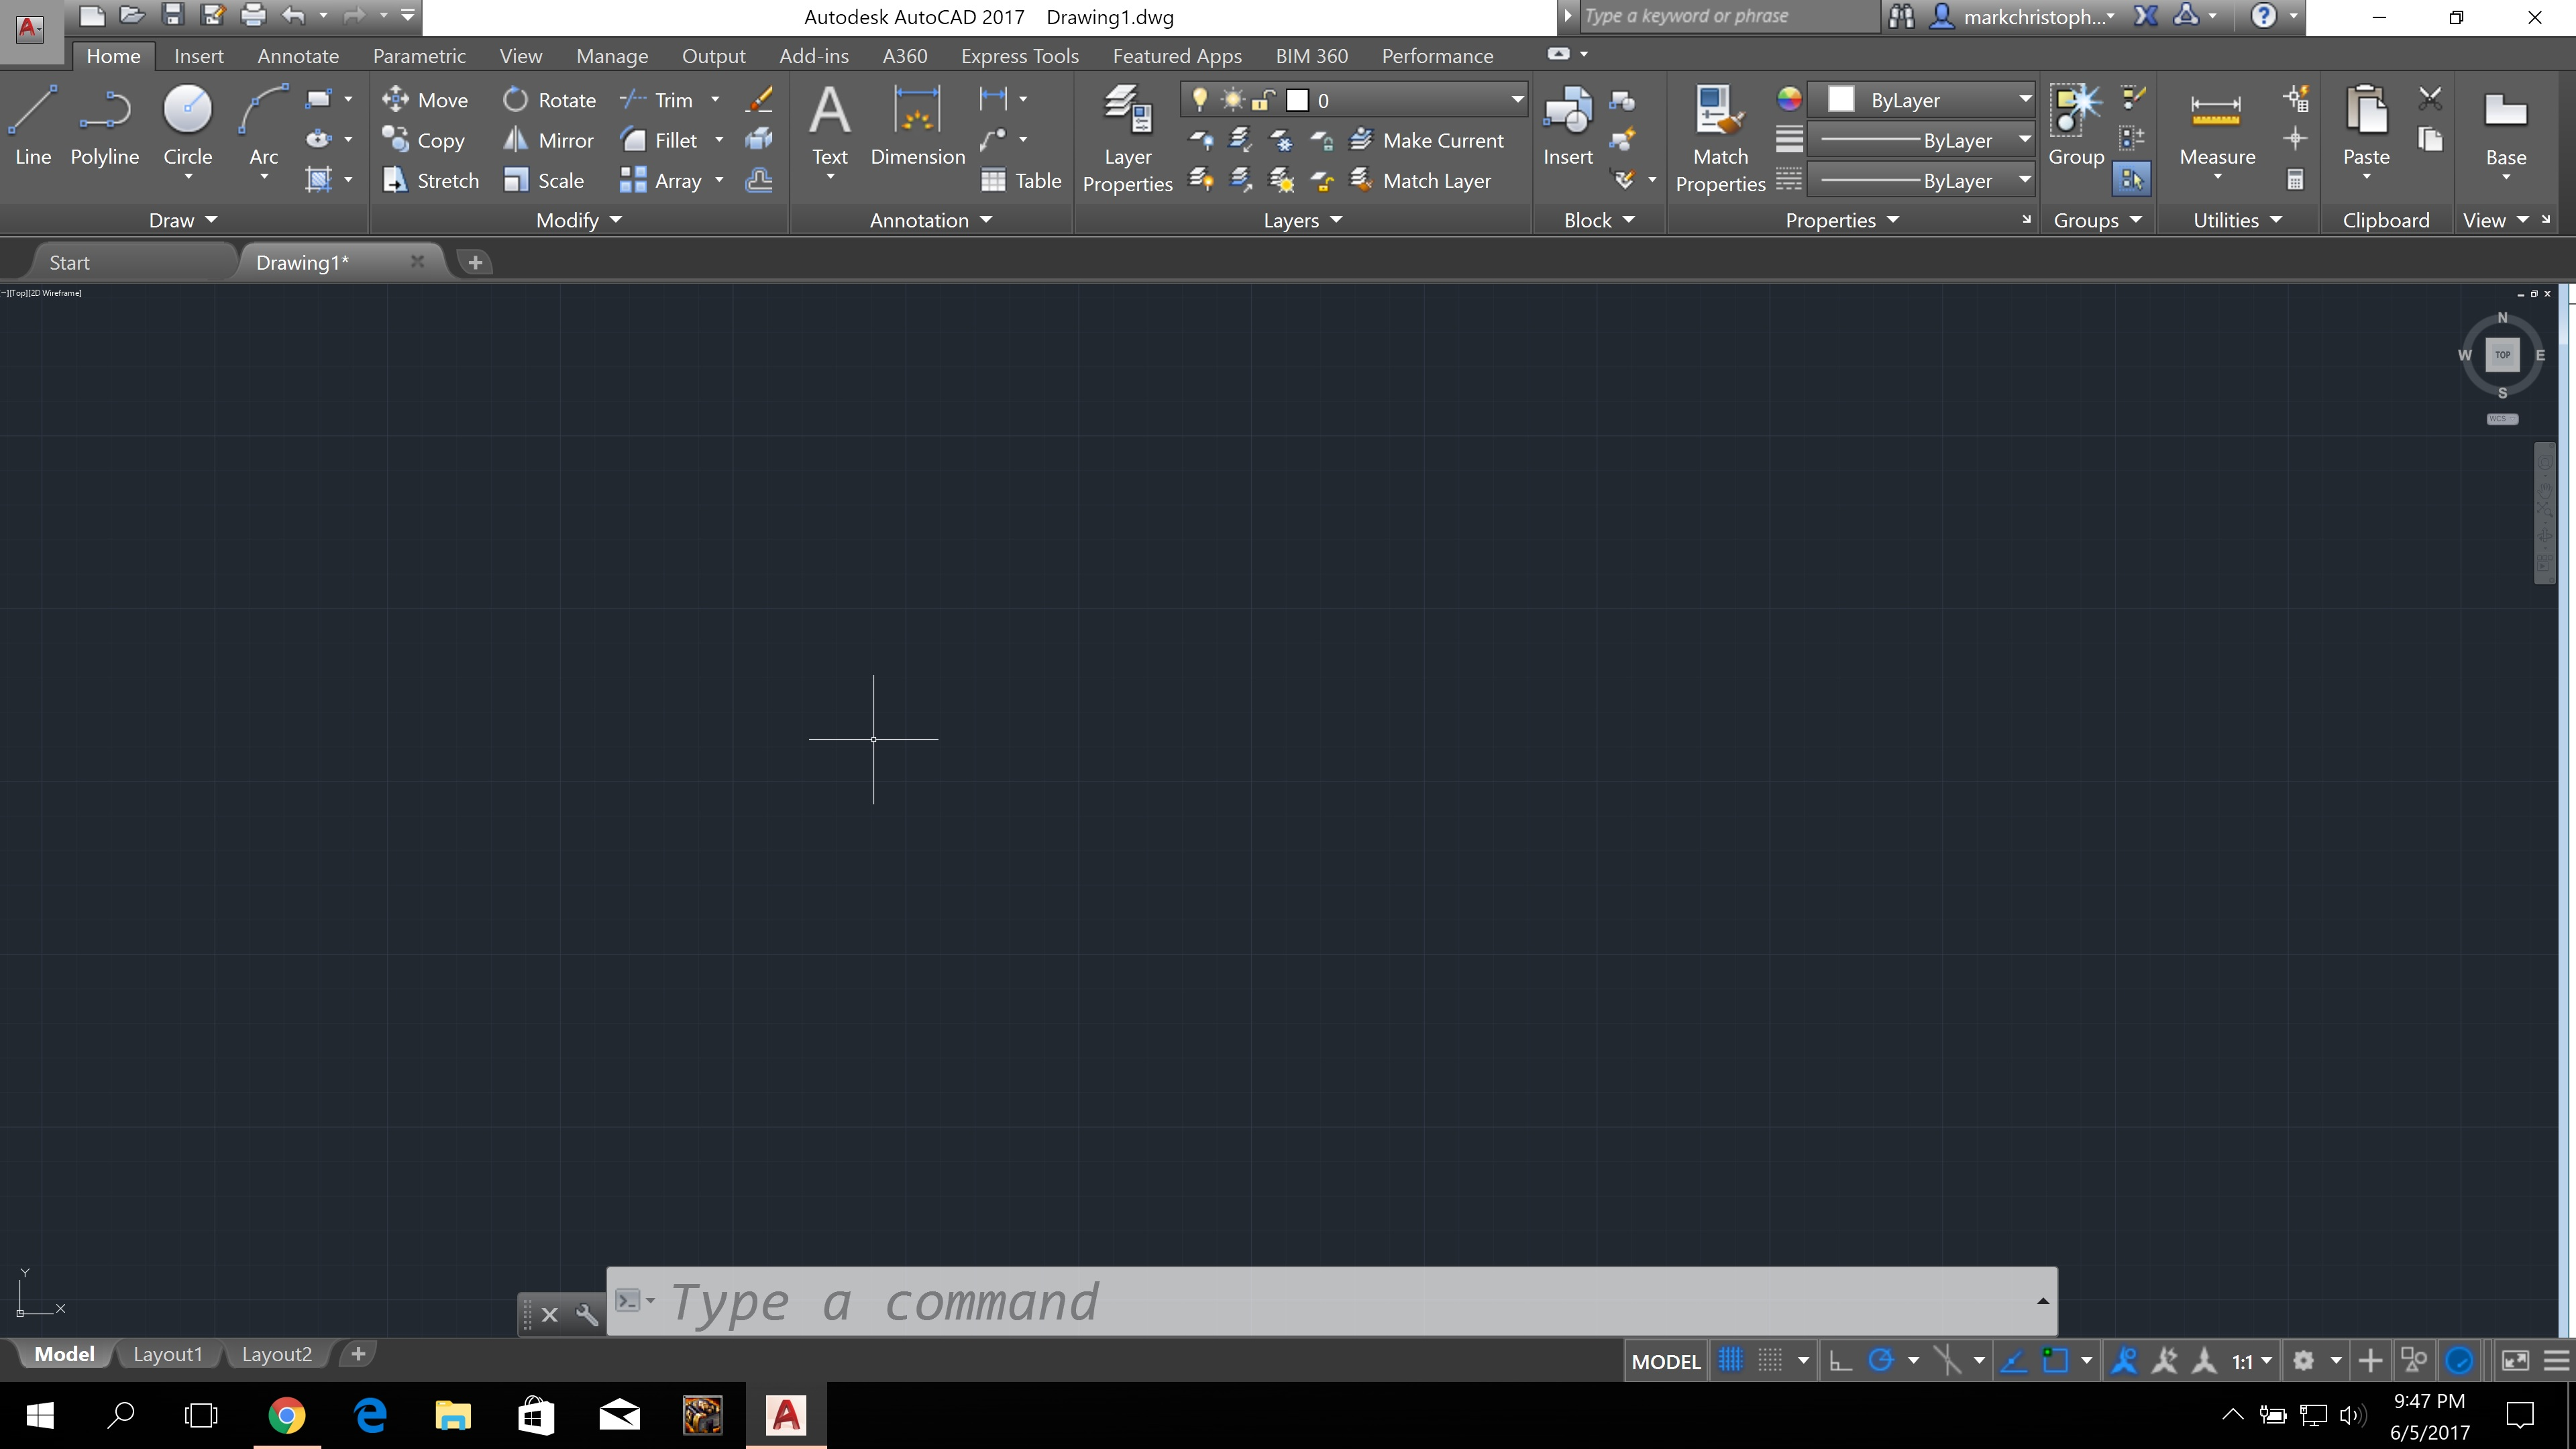 Solved: AutoCad 2017 QHD 3440x1440 monitor scaling issues